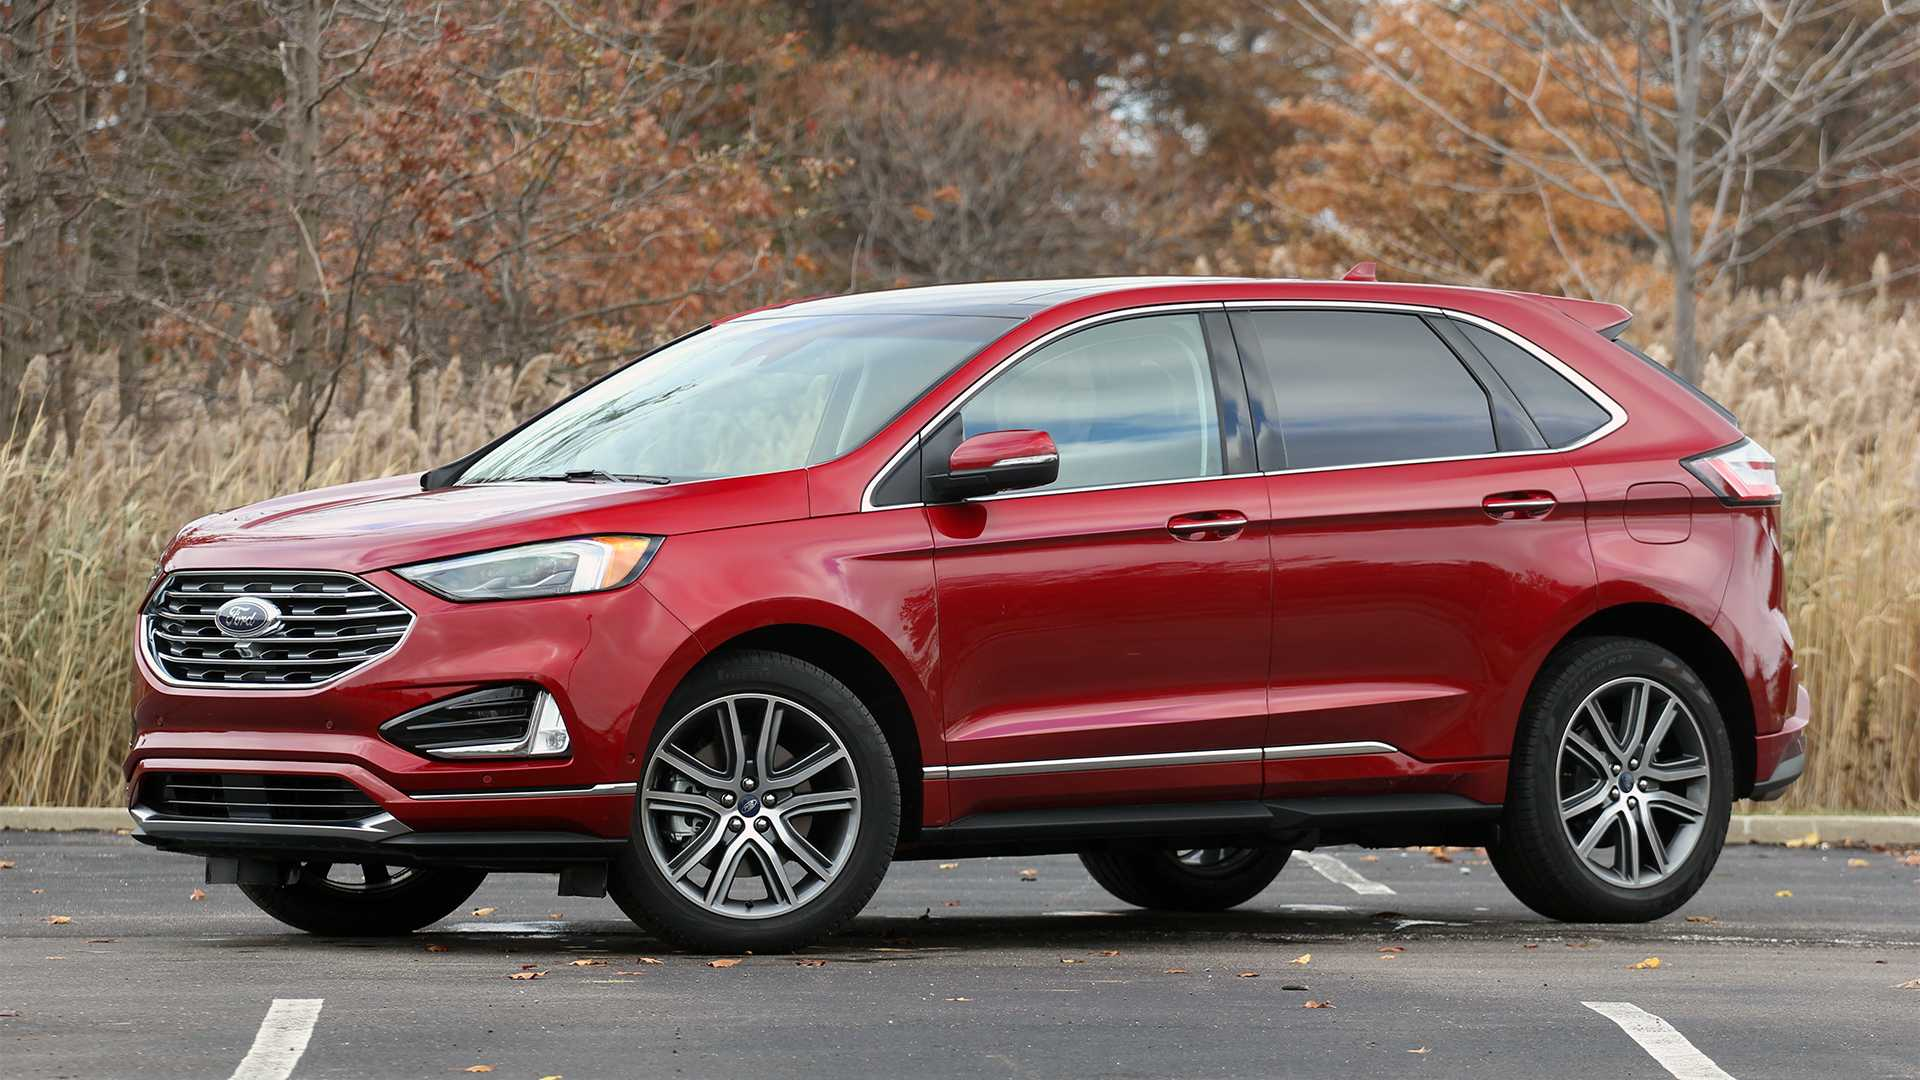 82 The 2019 Ford Edge Price And Release Date